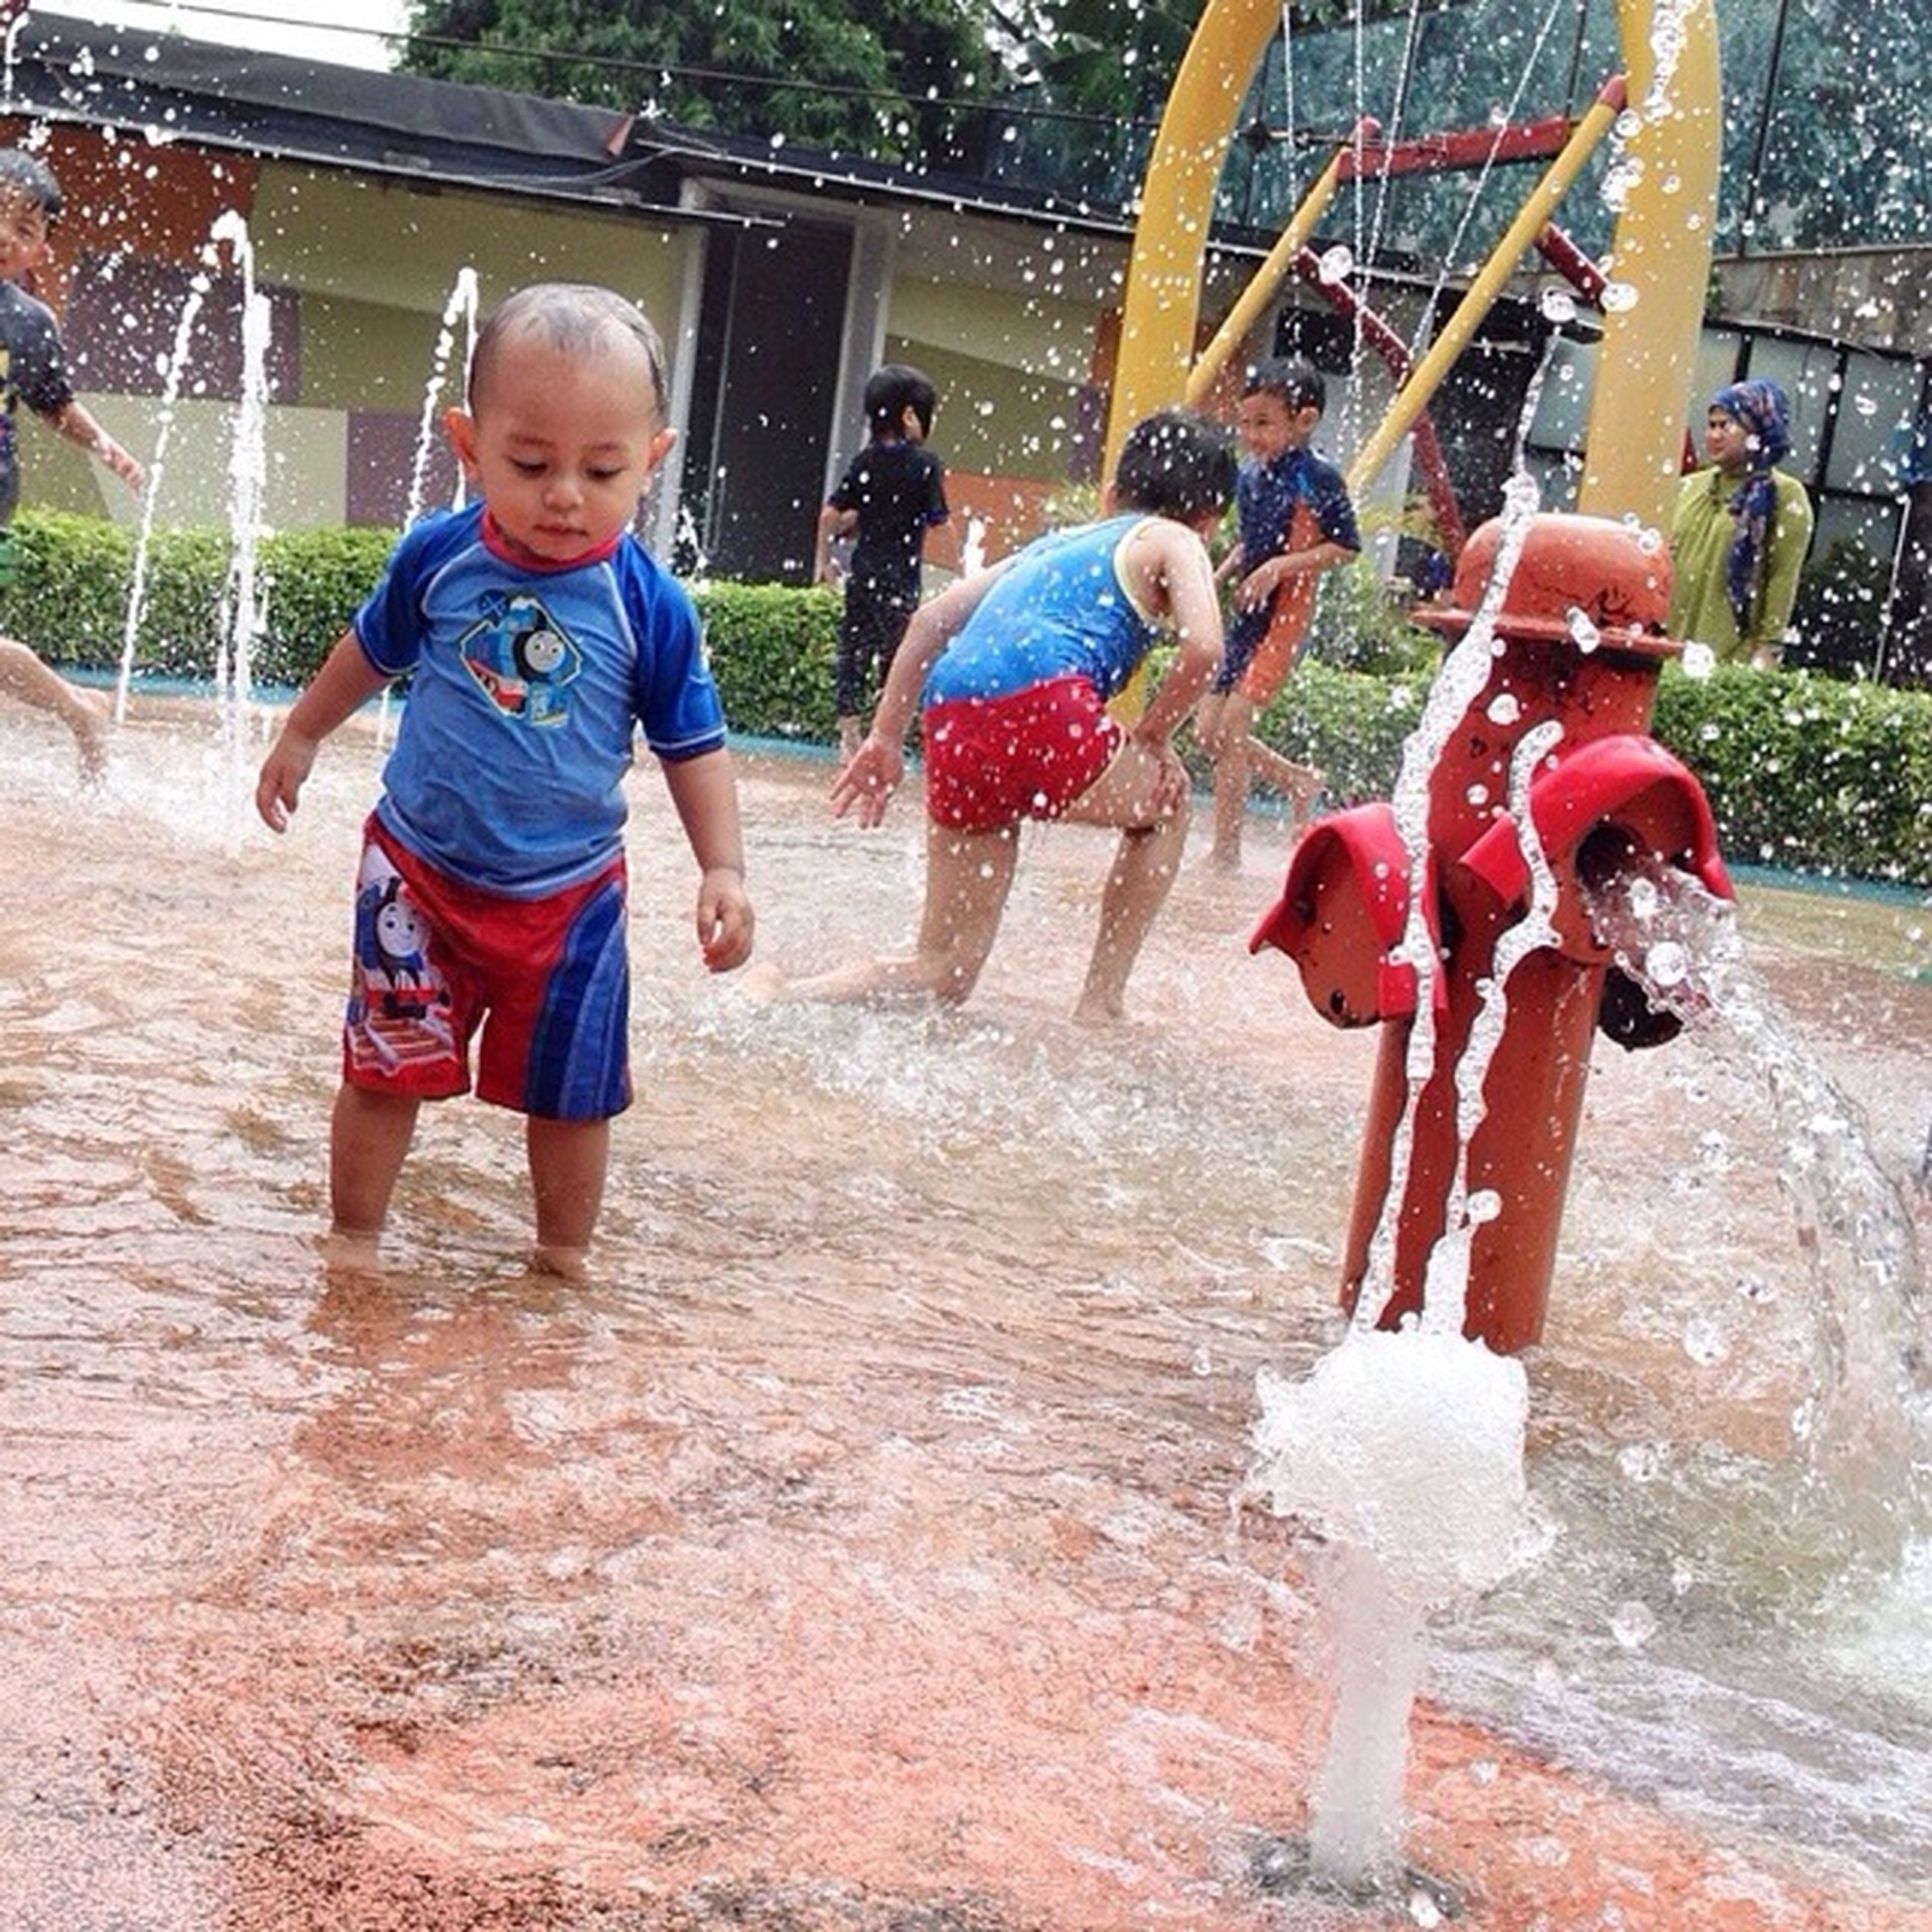 childhood, boys, girls, elementary age, full length, lifestyles, casual clothing, person, leisure activity, fun, happiness, enjoyment, playful, togetherness, innocence, playing, smiling, park - man made space